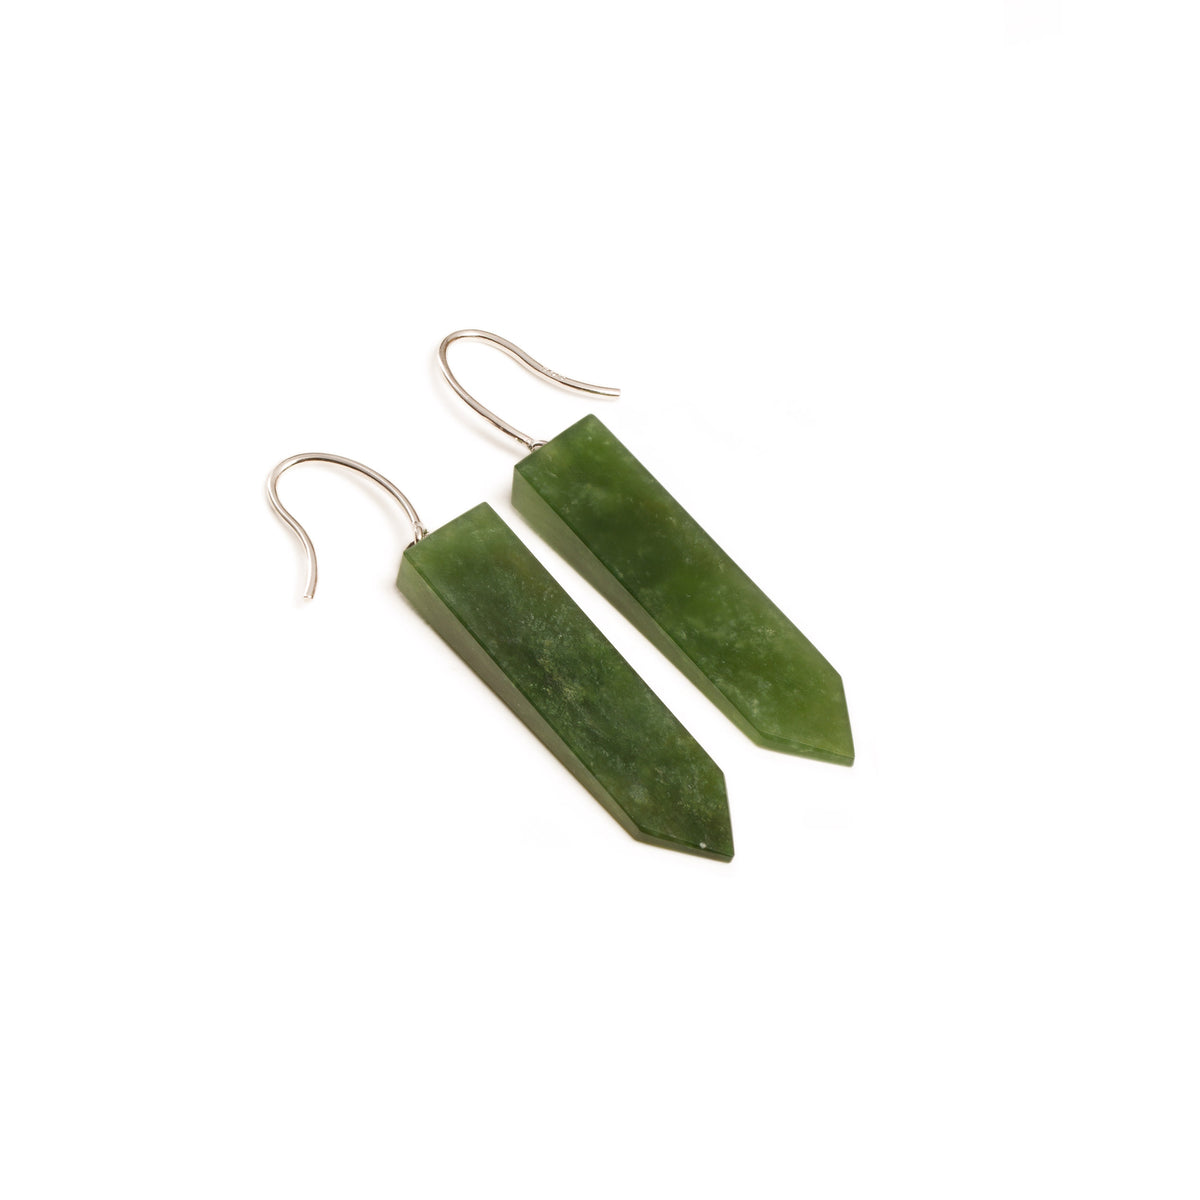 New Zealand Pounamu Slender Pointed Earrings